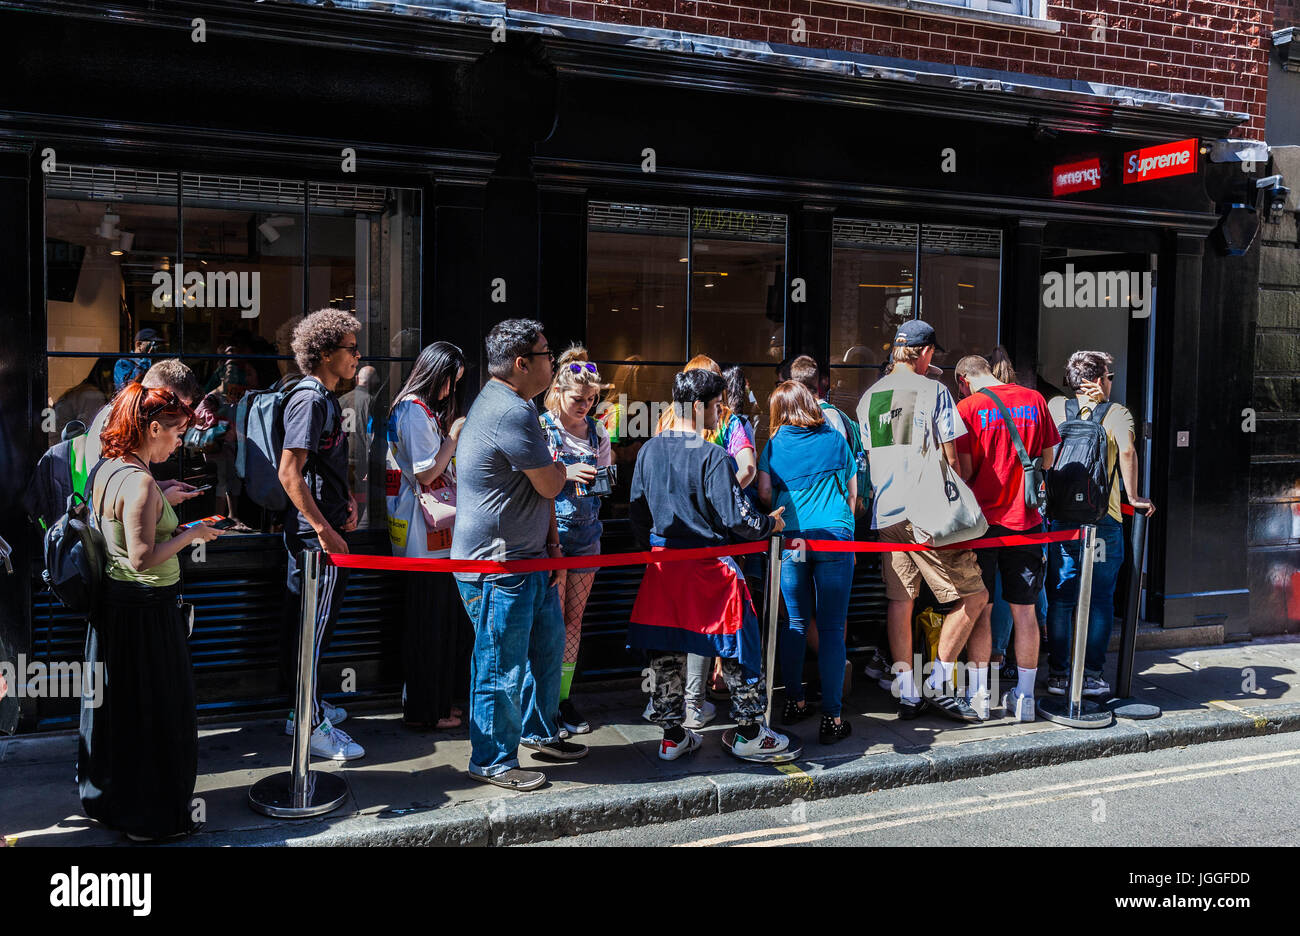 Queue of young people waiting outside trendy shop Supreme on Peter Street, Soho, London, England, UK. - Stock Image